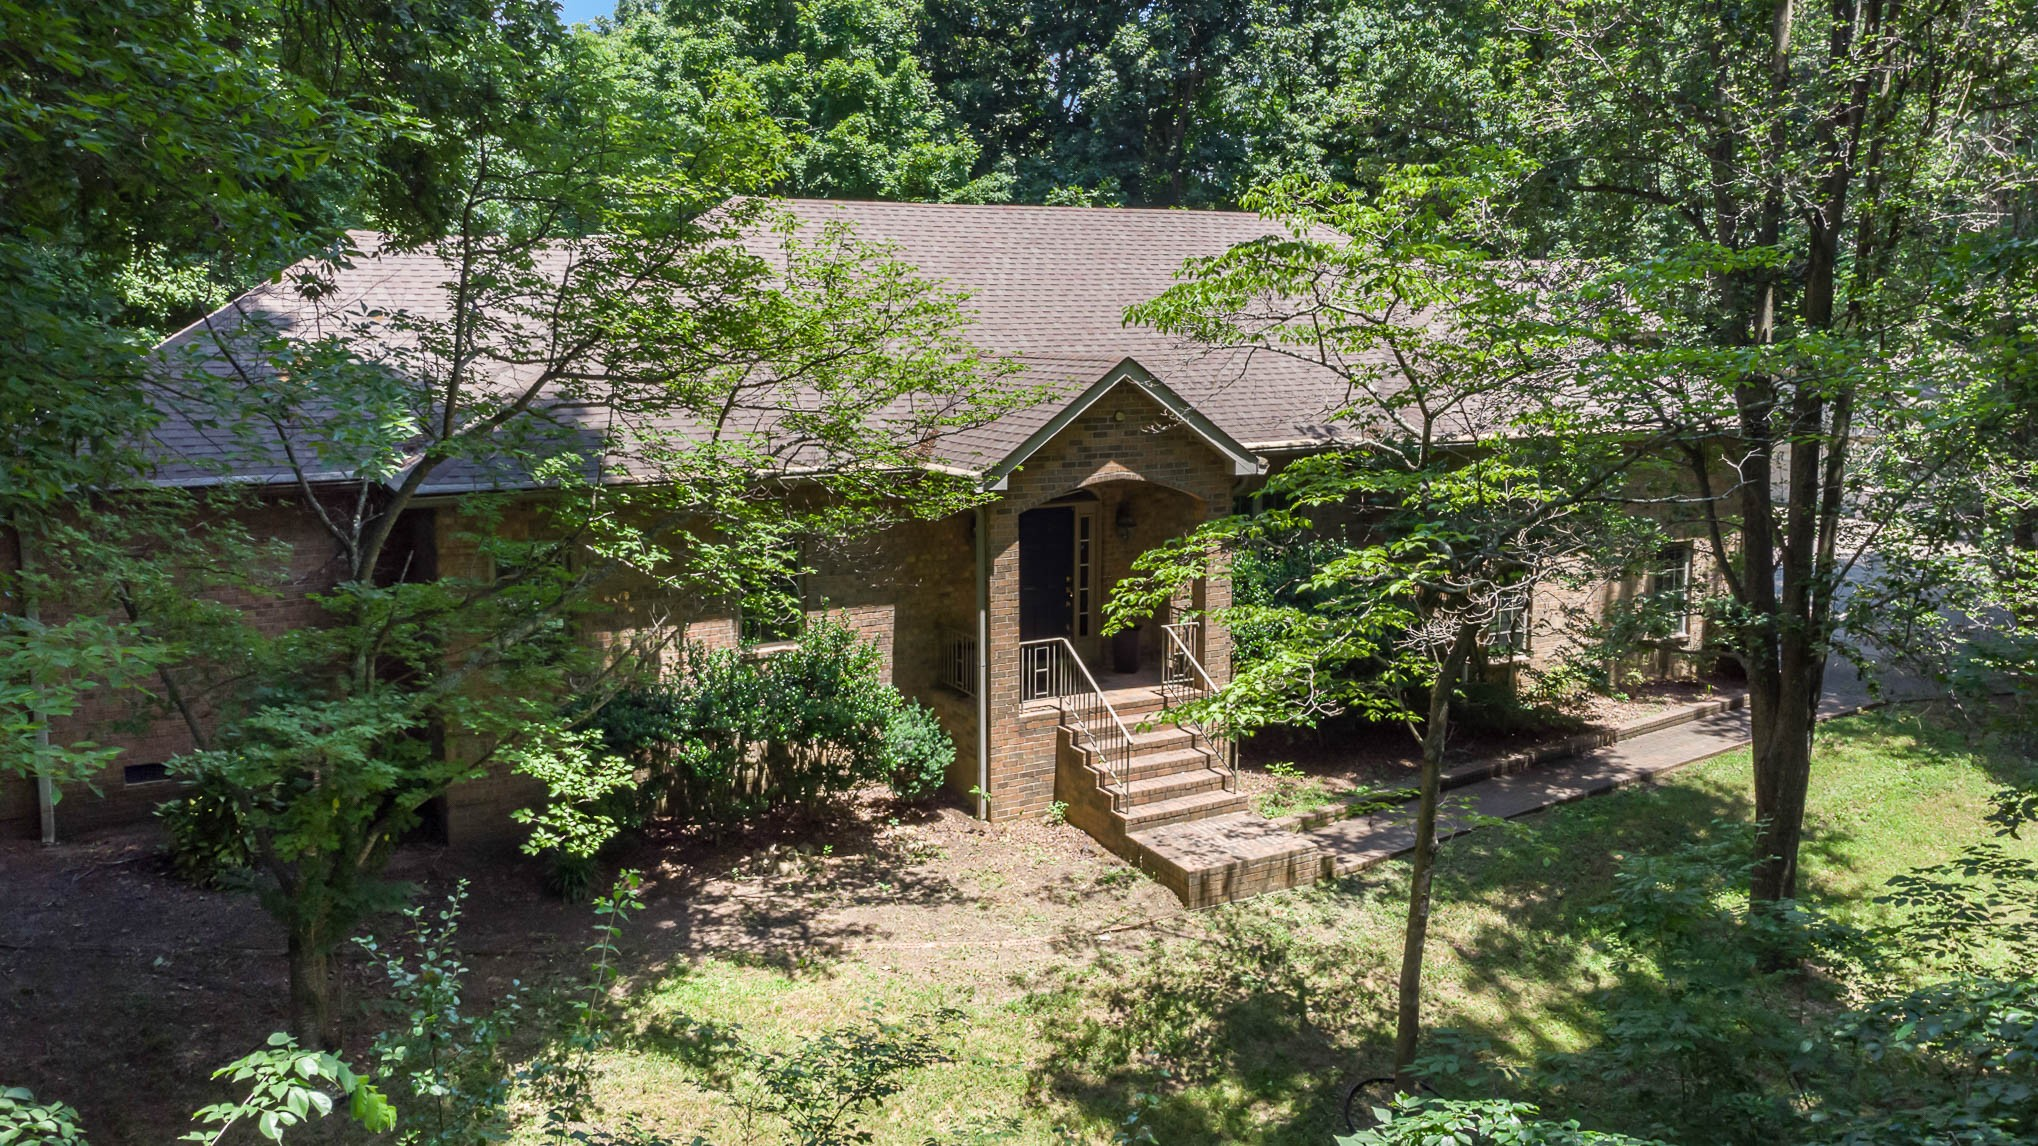 Spacious home on wooded lot with 6+ acres! Just minutes from Downtown Franklin! Lovely back deck off living room and kitchen with abundant wildlife. All bedrooms on main level with a large bonus room upstairs with half bath. Paved driveway to the house and a large workshop/storage with power.